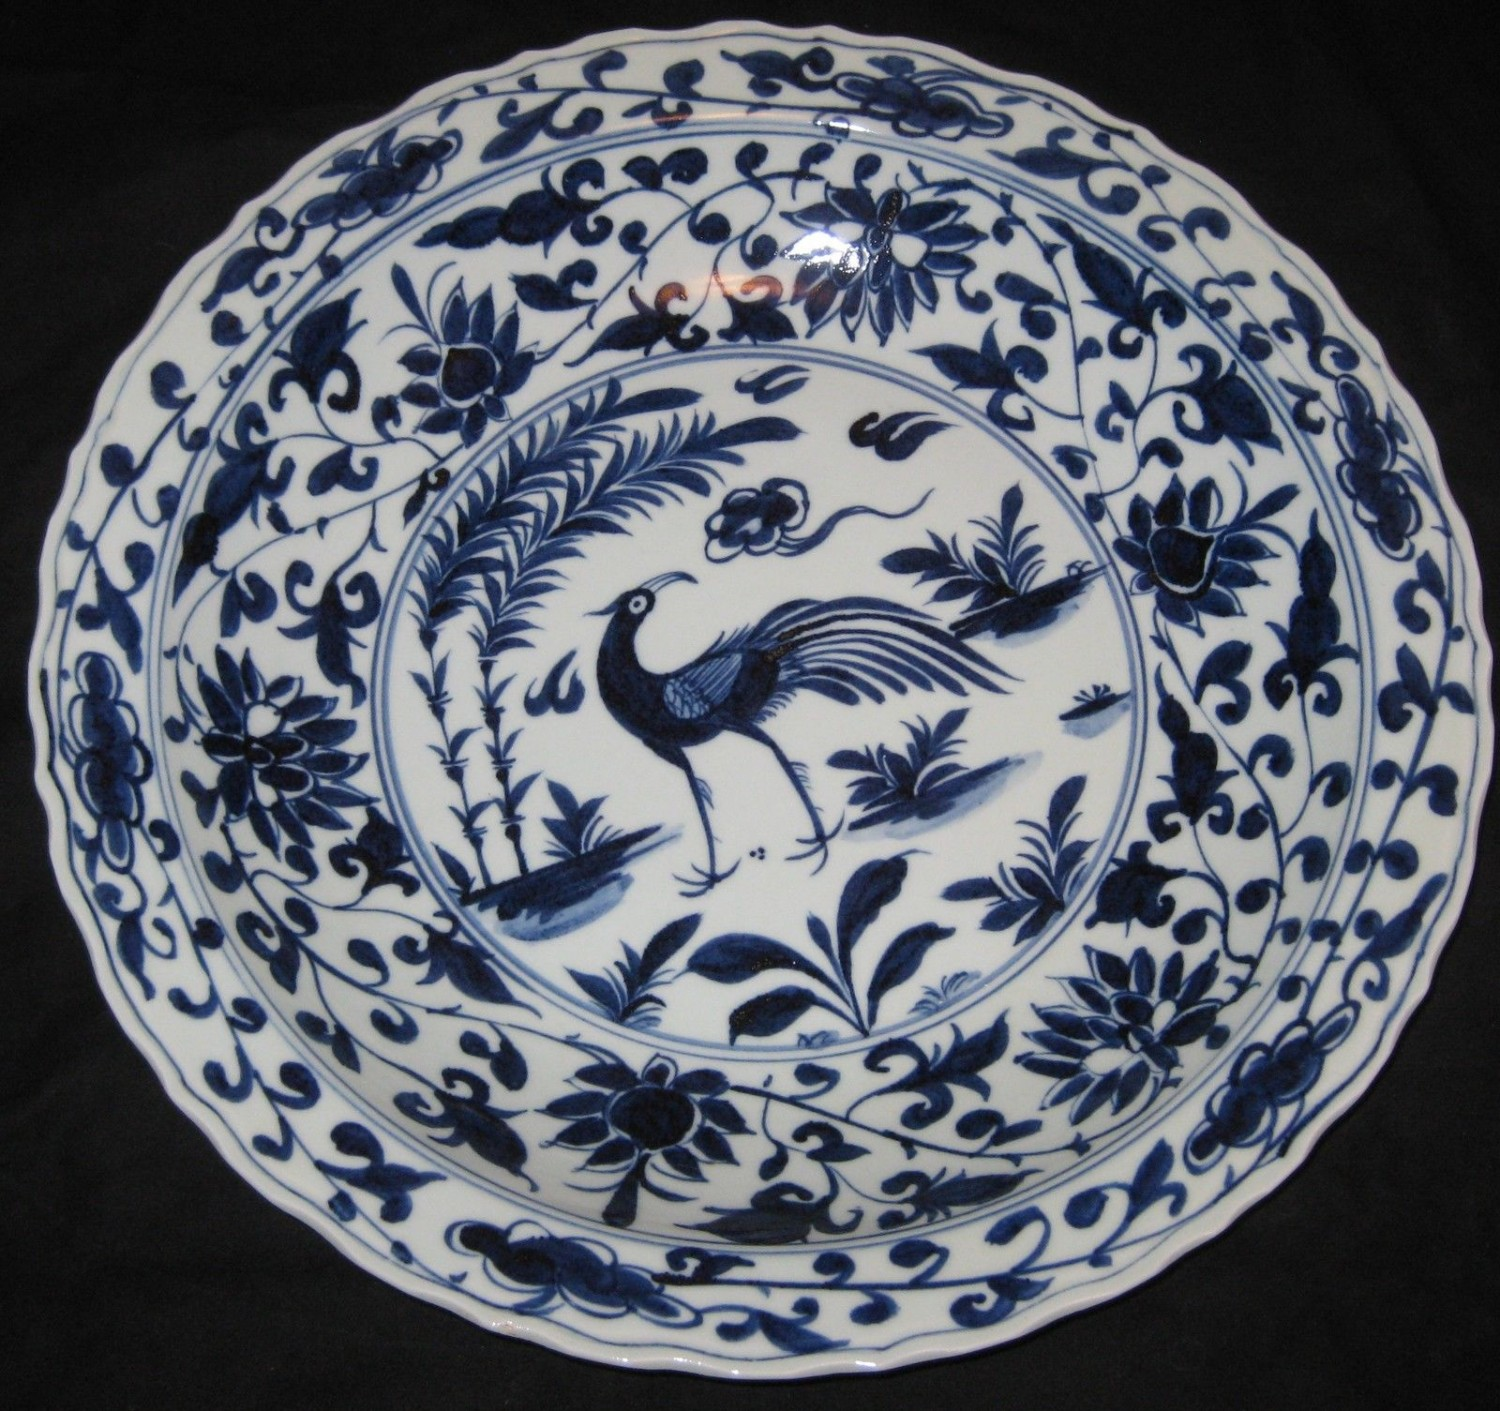 BIG CHINESE PORCELAIN BIRD&FLOWER, 44.5 CM B&W CHARGER, 19TH C,XUANDE MARK.